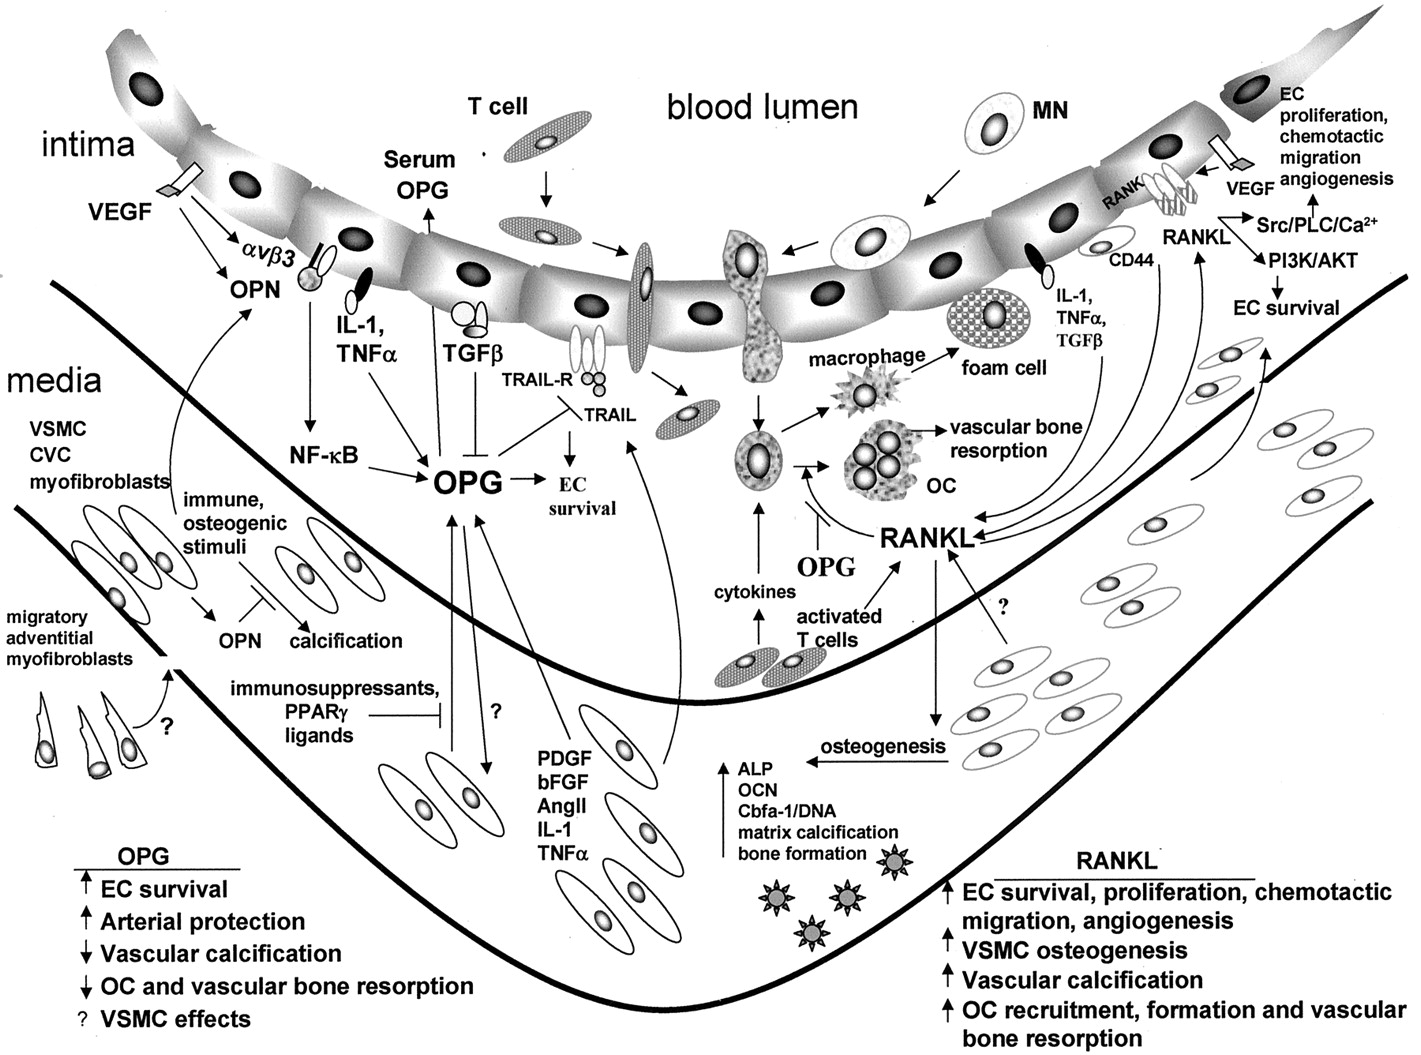 Regulation Of Vascular Calcification By Osteoclast